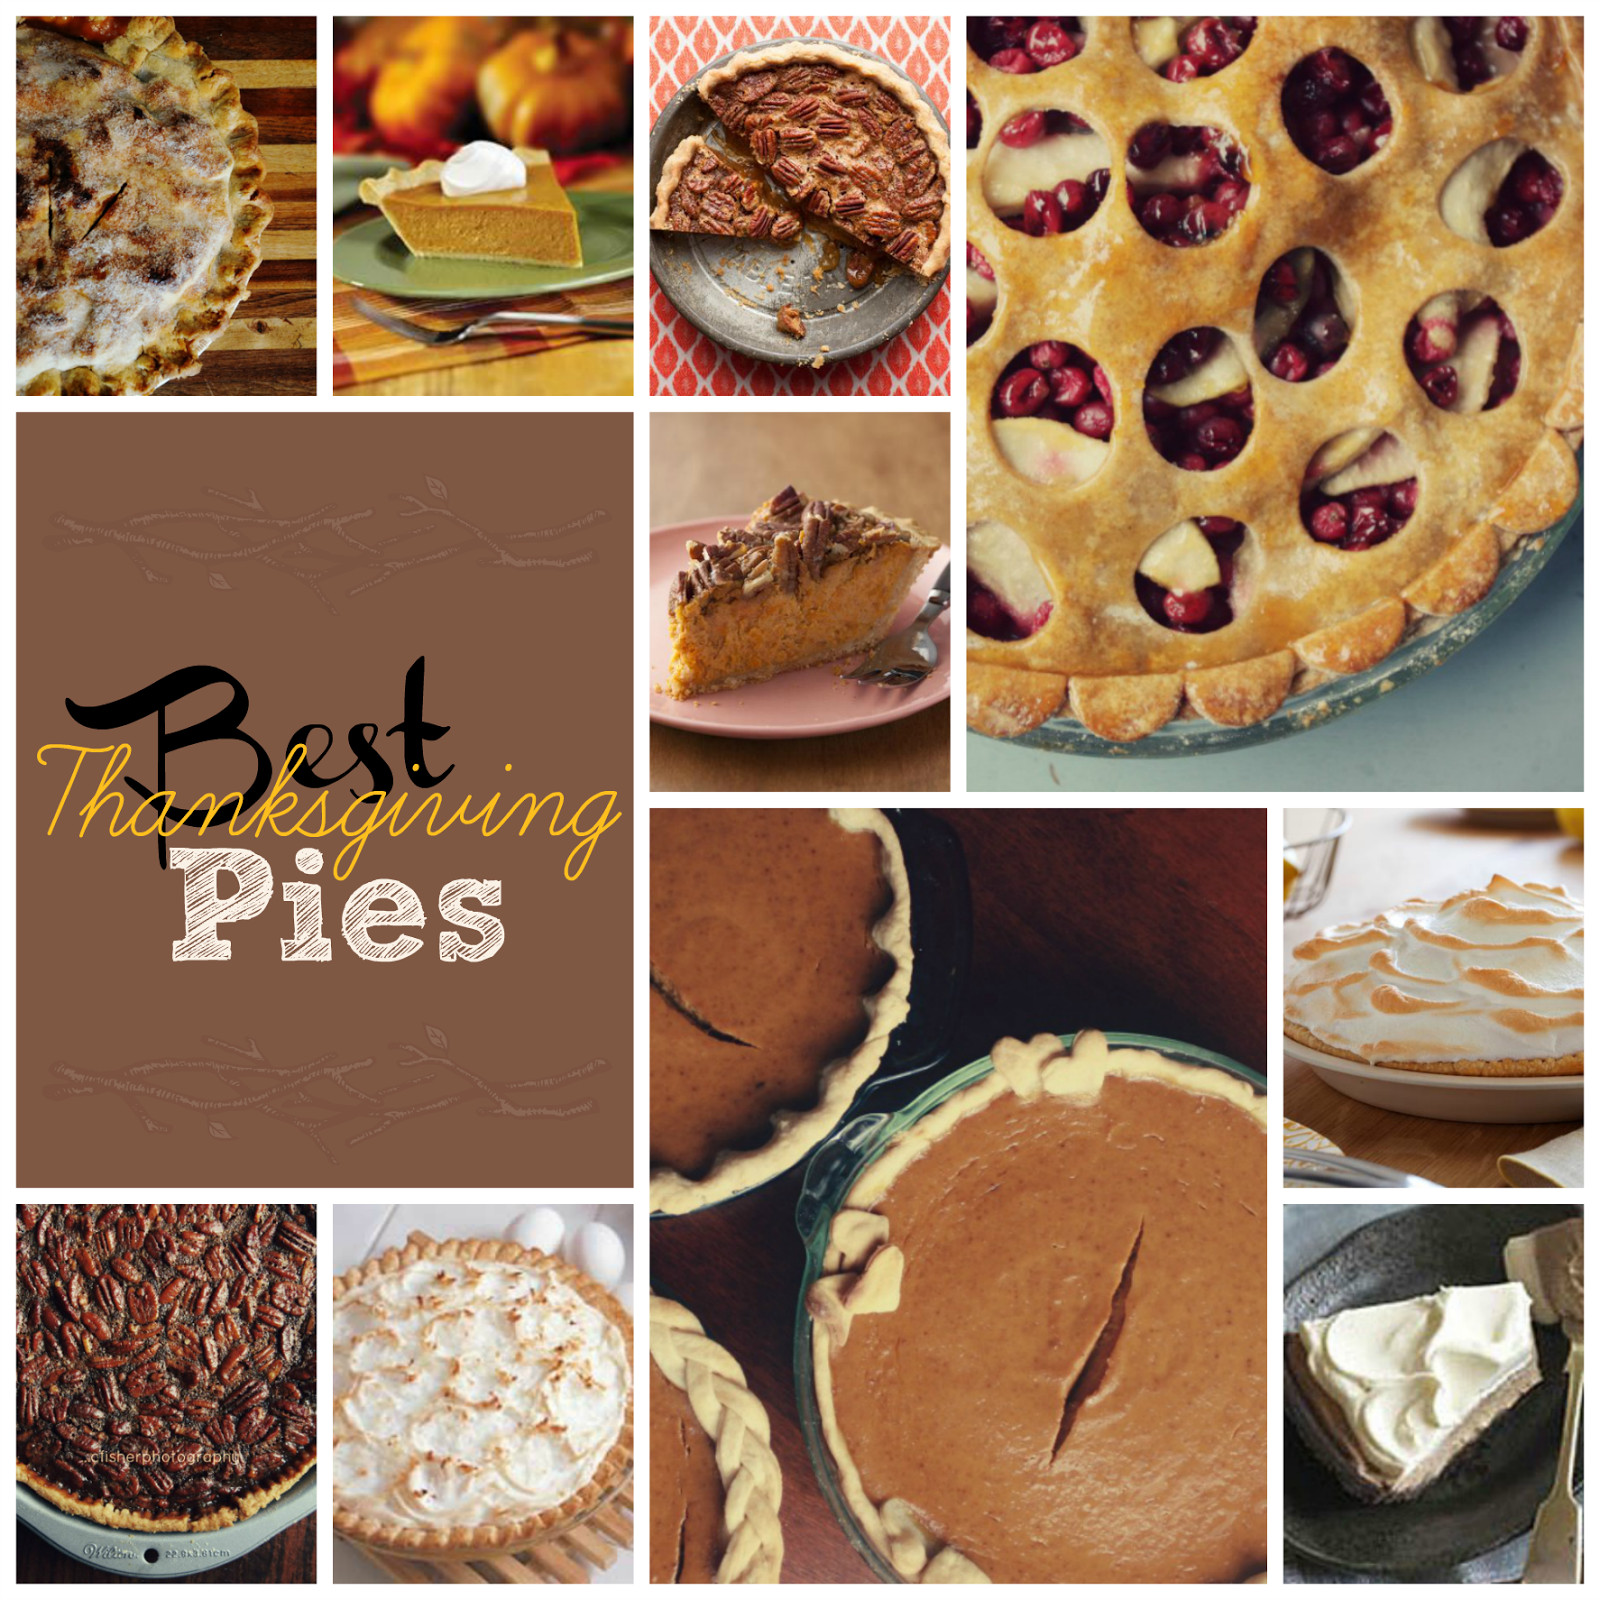 Best Thanksgiving Pies Recipes  Best Thanksgiving Pies This Girl s Life Blog